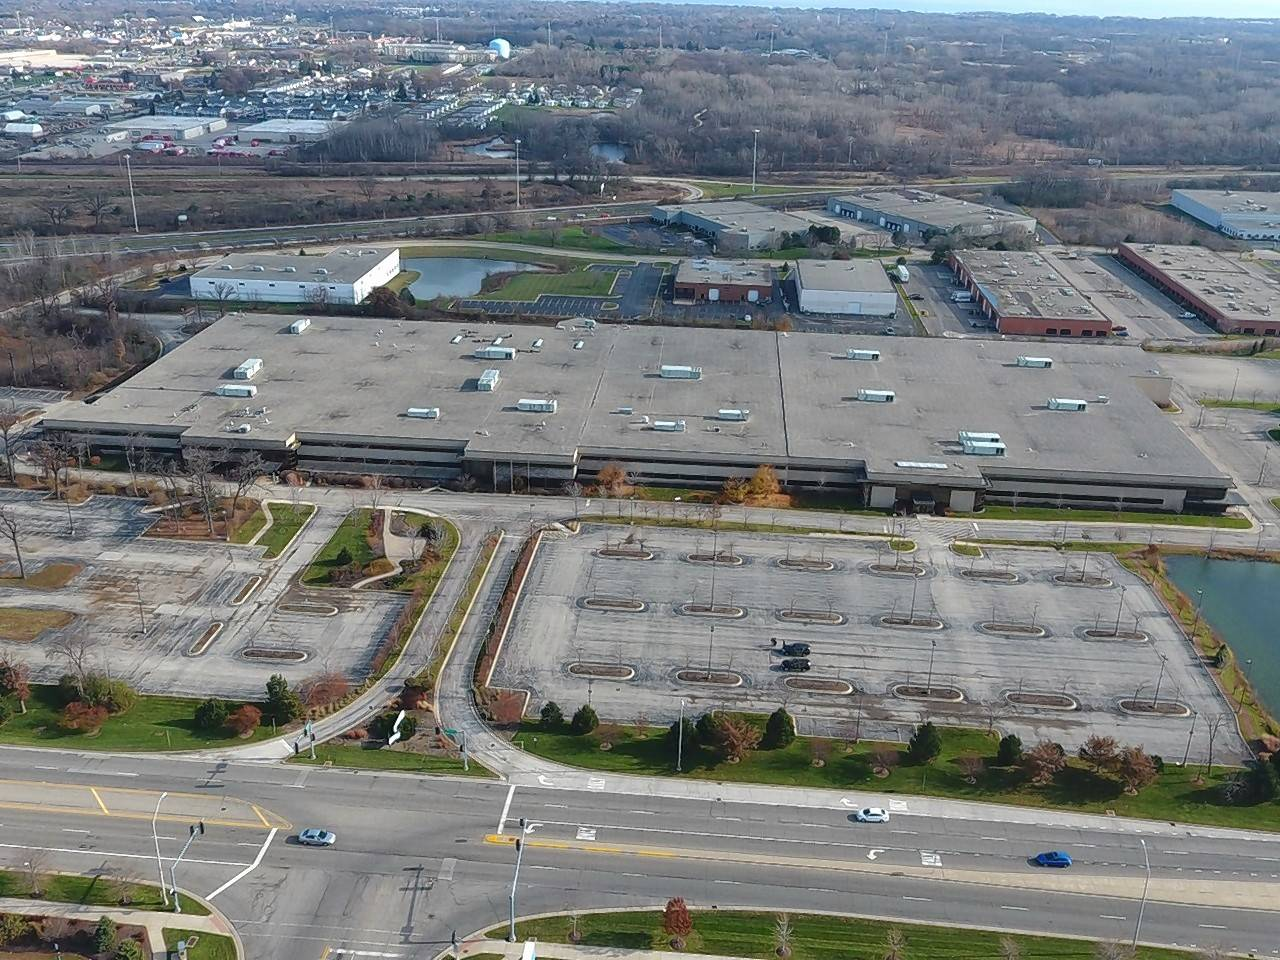 Venture One Real Estate, through its acquisition fund, VK Industrial IV LP, a partnership between Venture One and Kovitz Investment Group, closed on a 363,027 square foot industrial building on 37.43 acres located at 800 S. Northpoint Road in Waukegan.